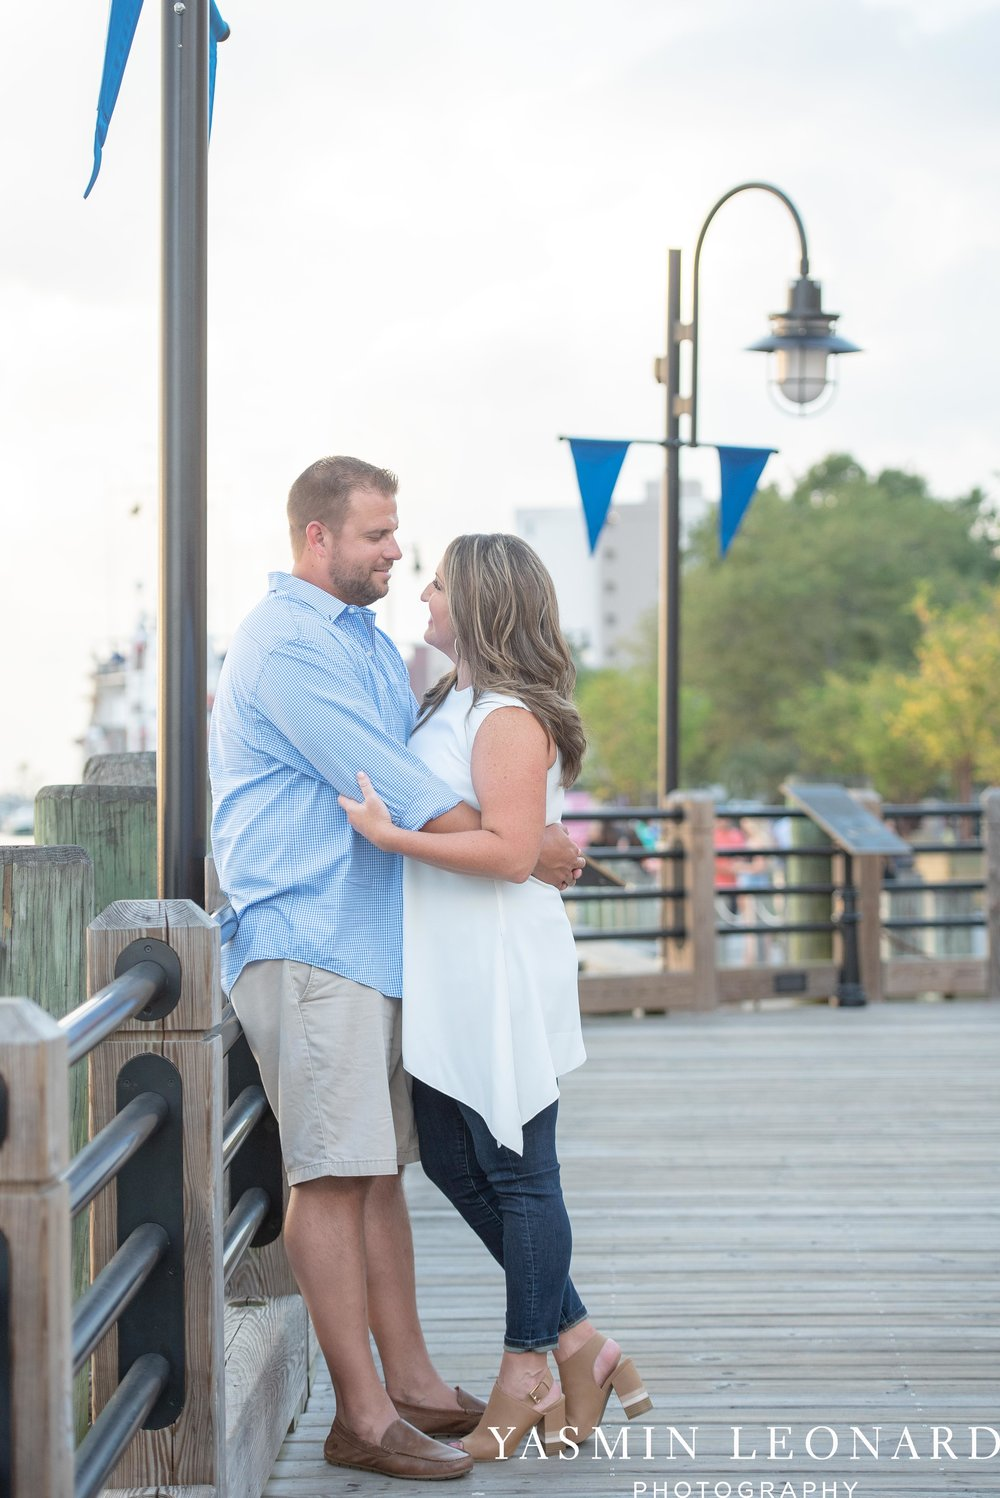 Wrightsville Beach Engagement Session - Wilmington Engagement Session - Downtown Wilmington Engagement Session - NC Weddings - Wilmington NC - Yasmin Leonard Photography-3.jpg